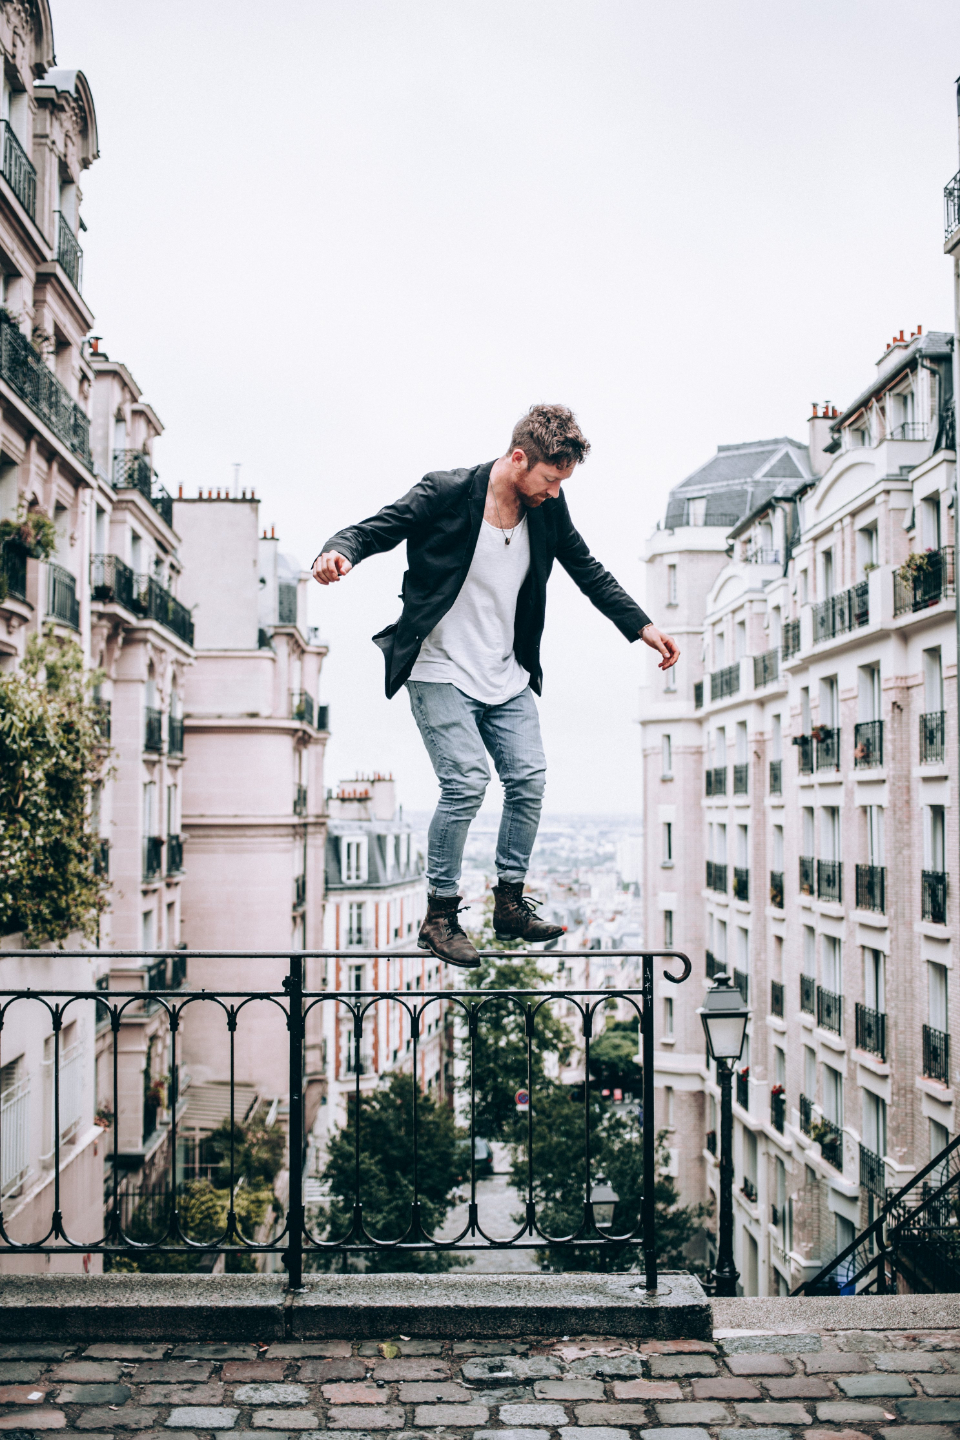 man fashion balancing city buildings standing person architecture outdoors risk daring urban stairs cobblestone male